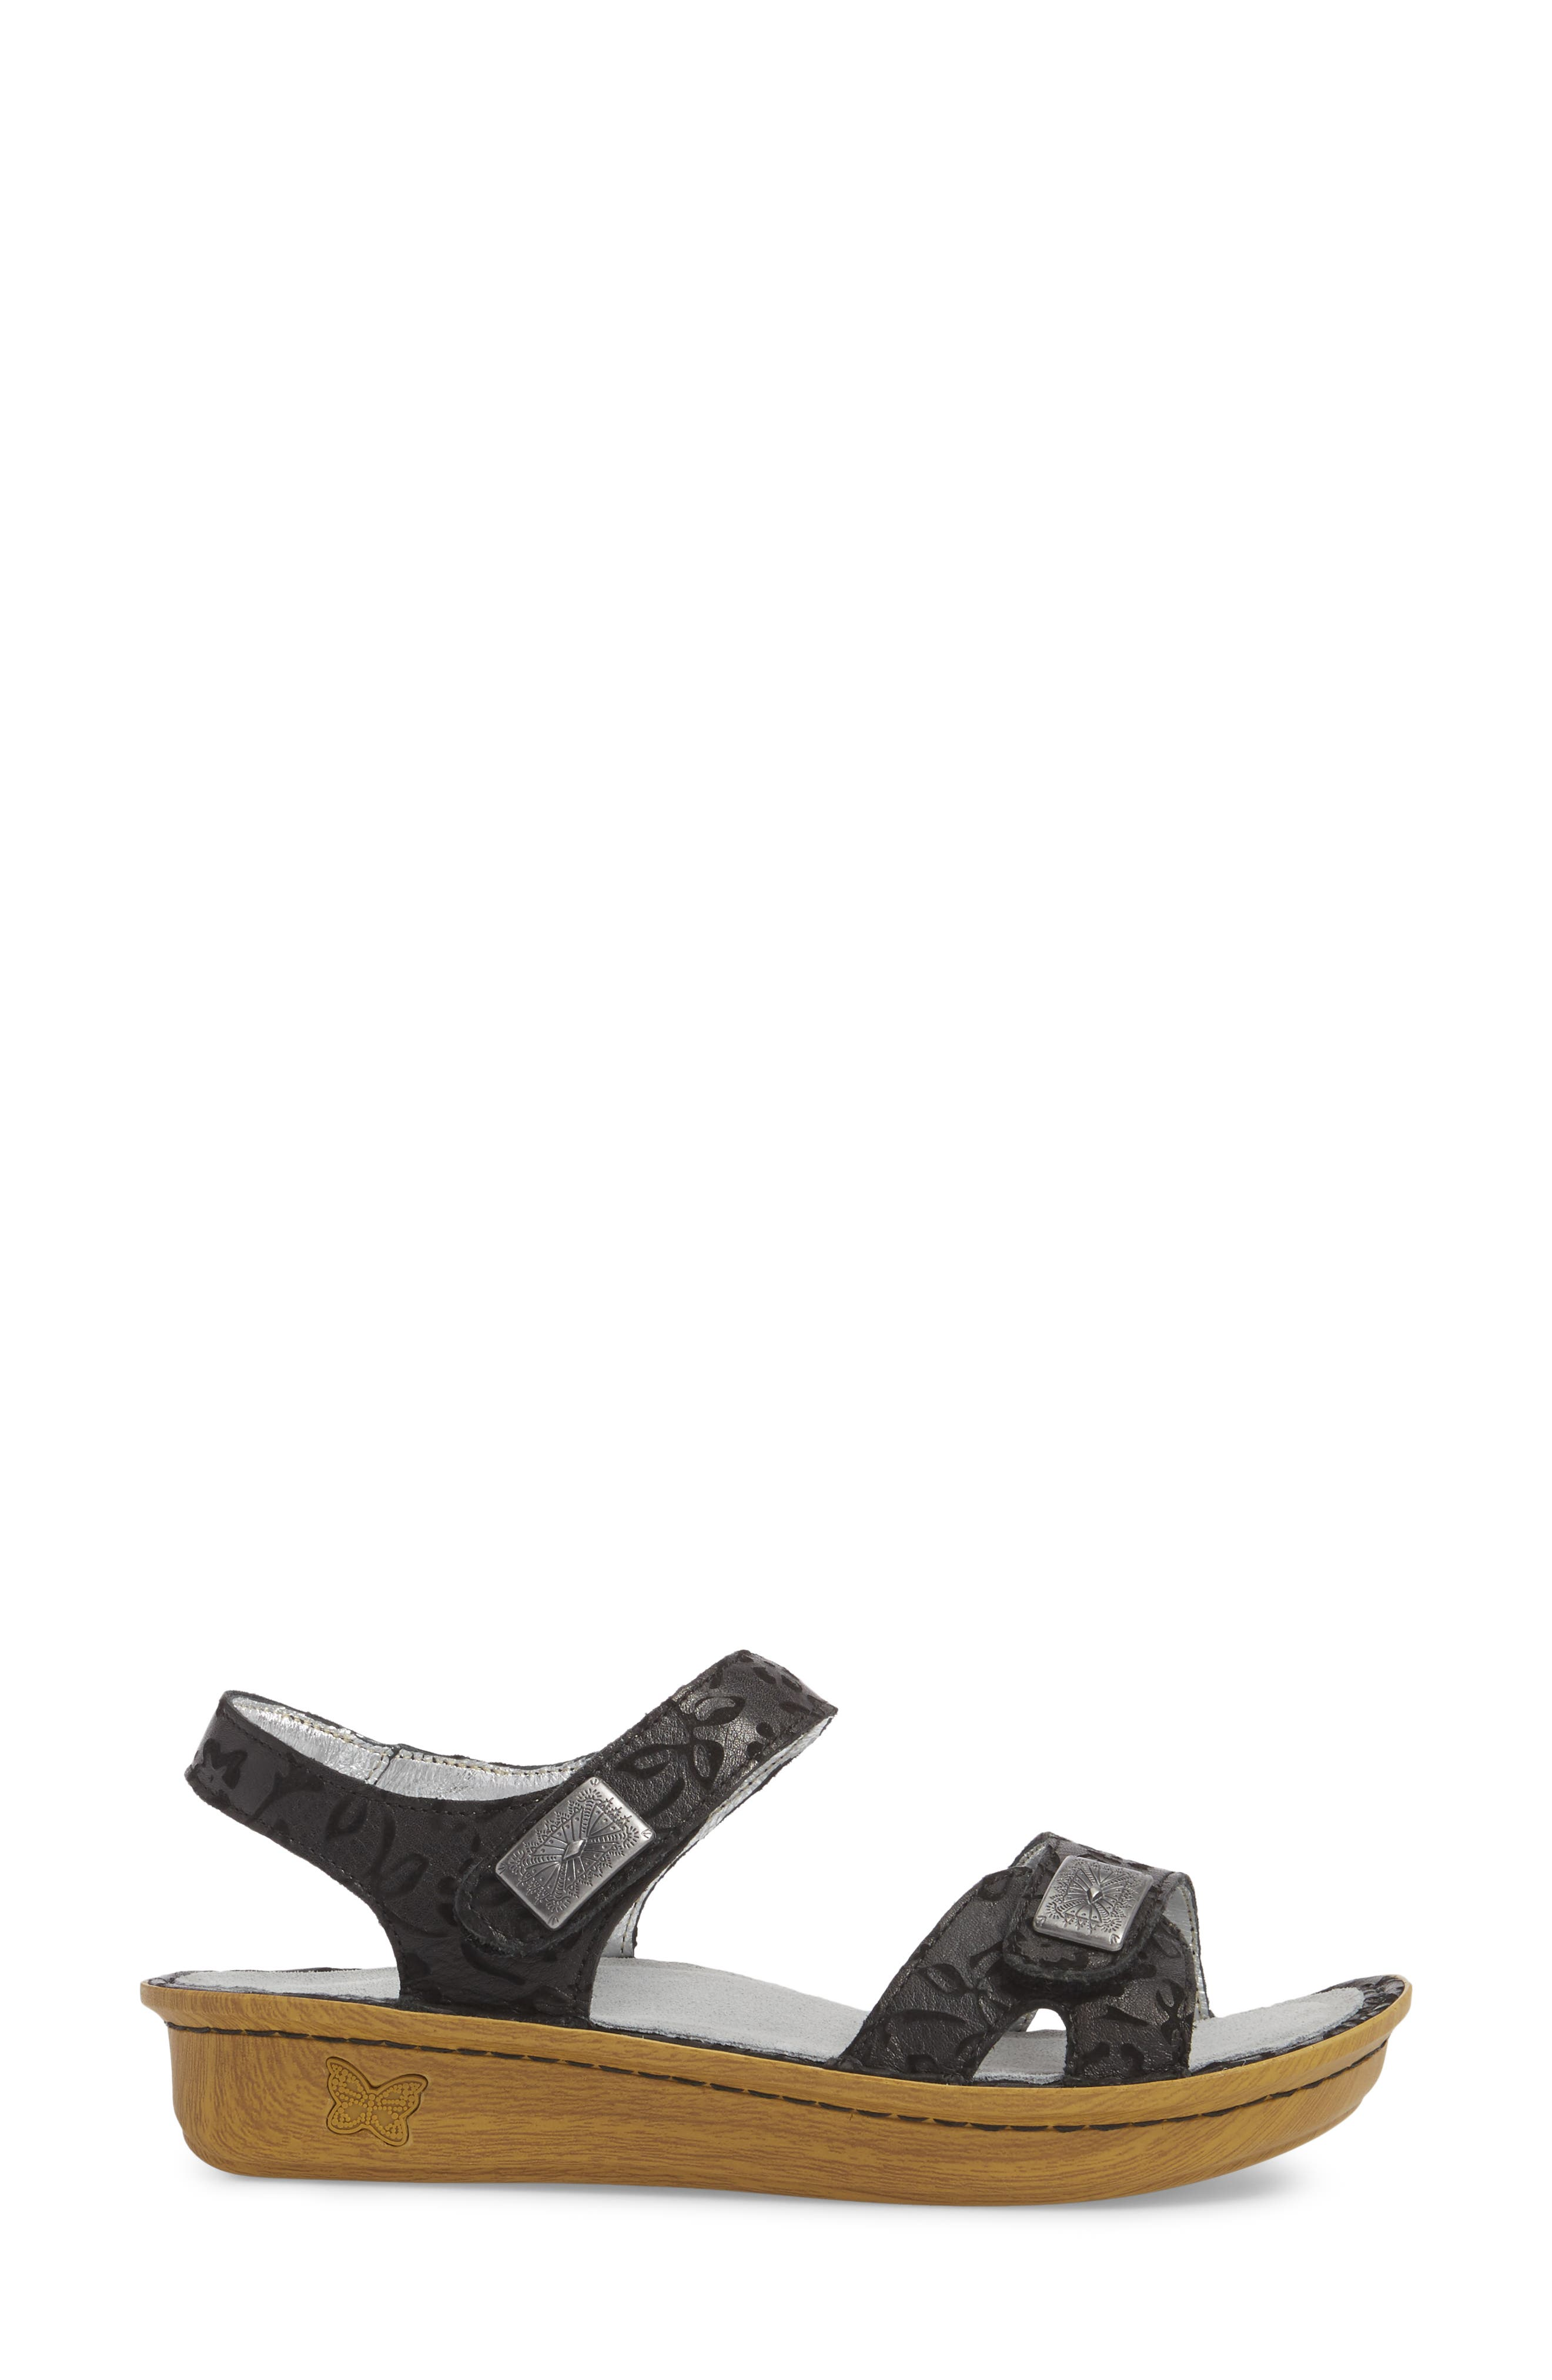 ALEGRIA, Vienna Sandal, Alternate thumbnail 3, color, MORNING GLORY BLACK LEATHER